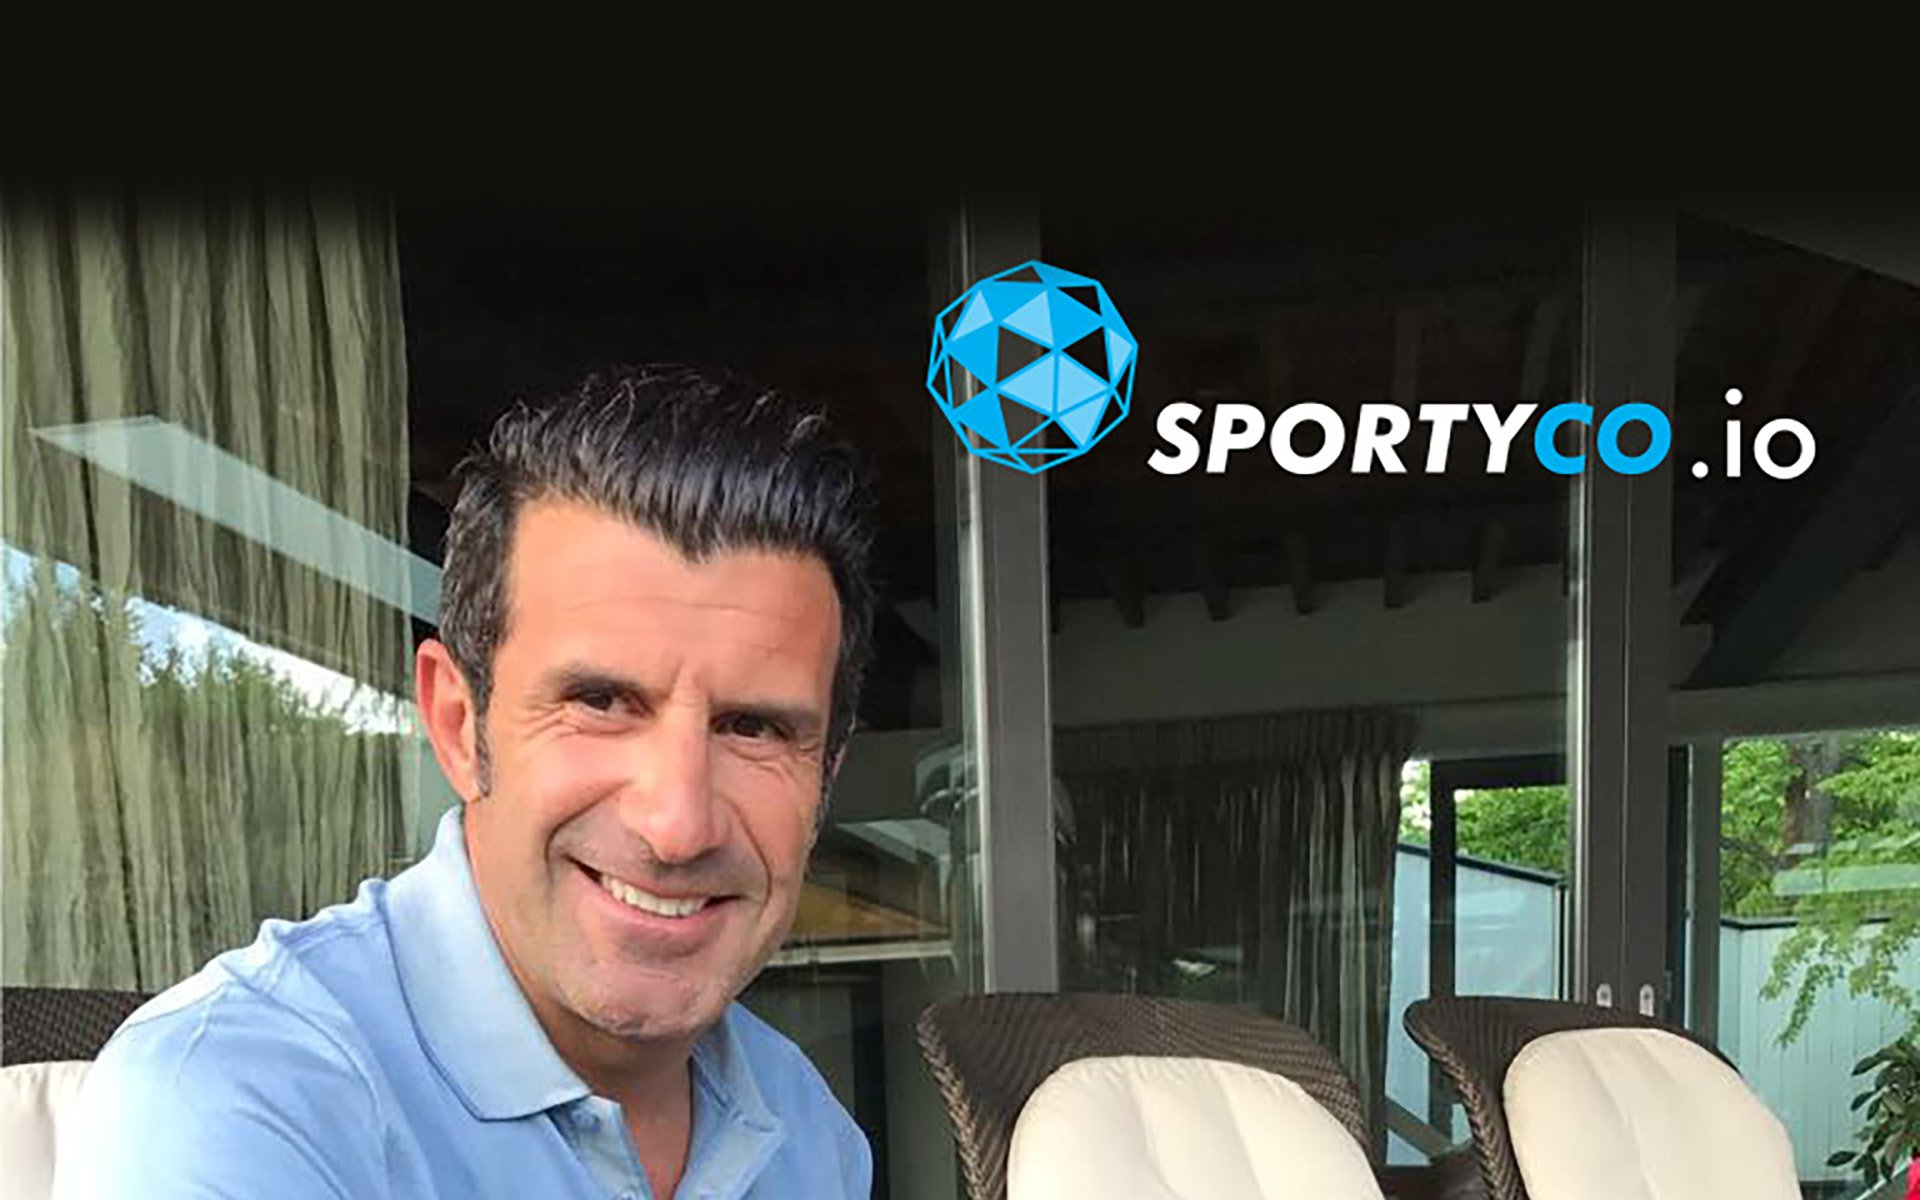 SportyCo Welcomes Luís Figo and Prepares to Host the World Sports BIockchain Summit